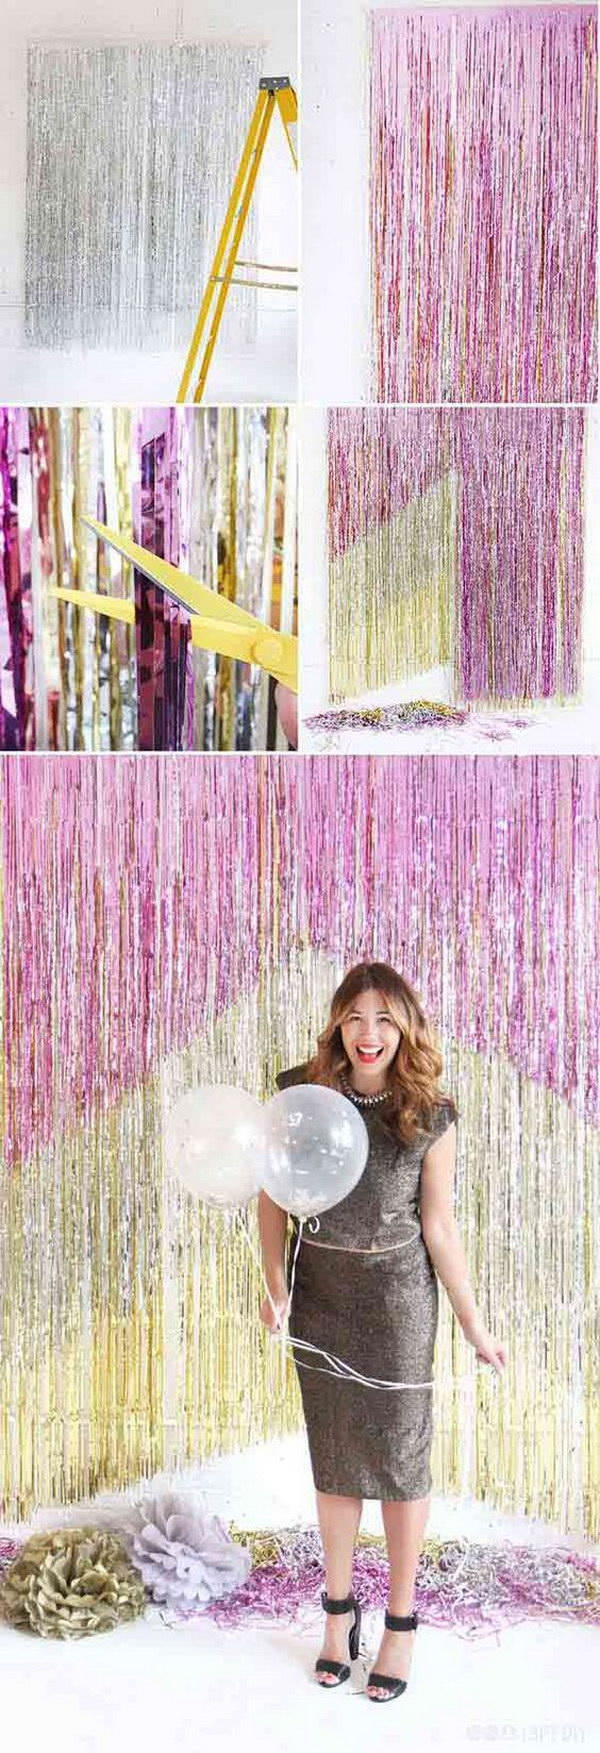 DIY Chevron Fringe Photo Booth Backdrop.